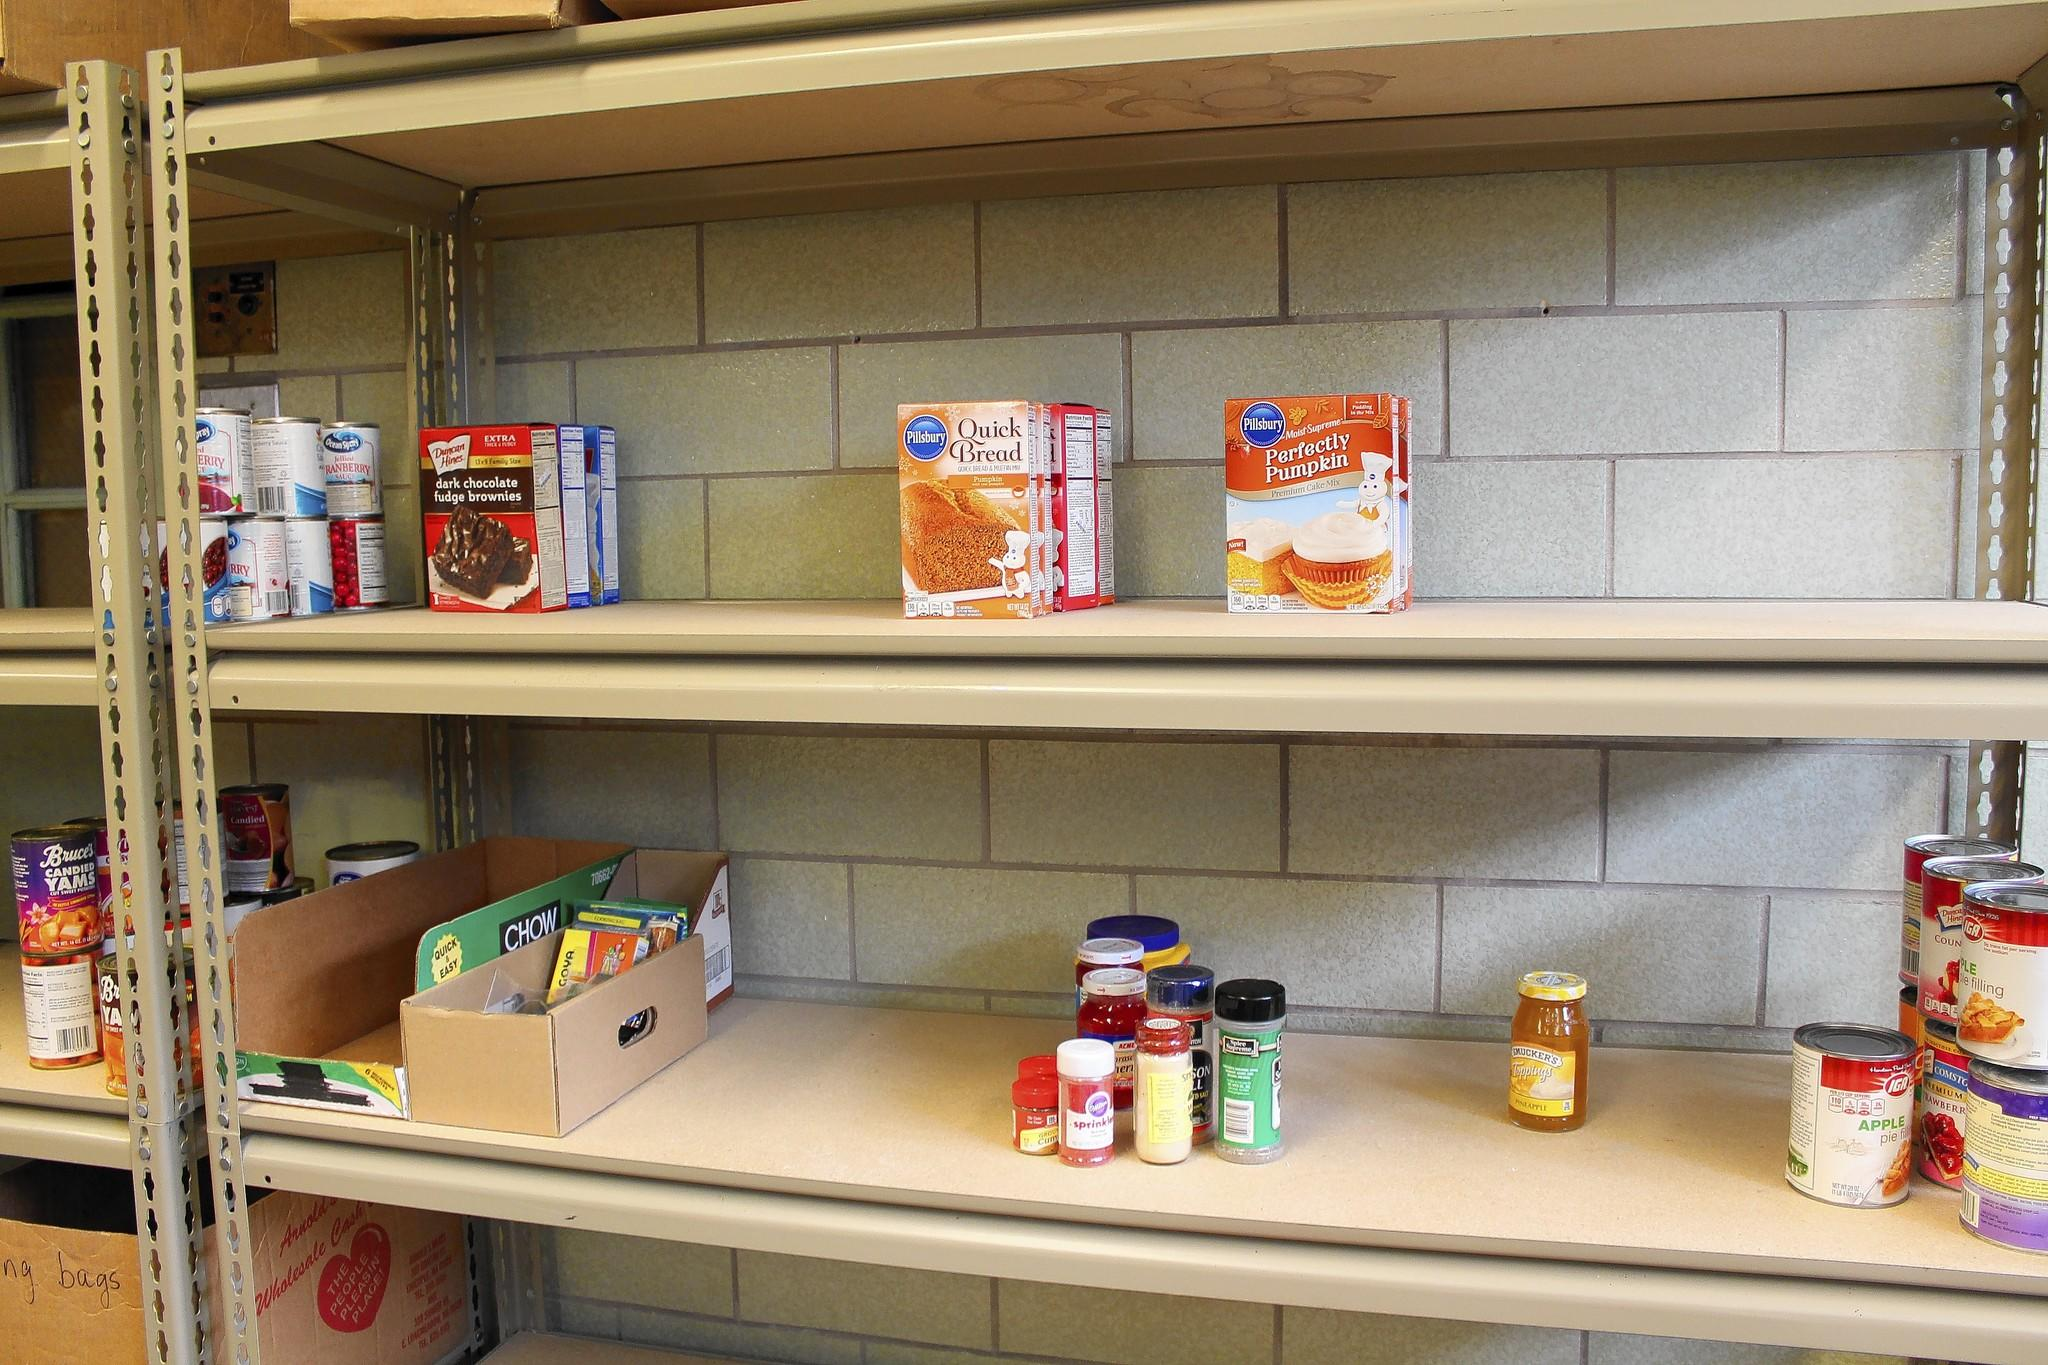 windsor locks food pantry in need of donations to fill shelves rh articles courant com food pantry shelves for sale food pantry empty shelves